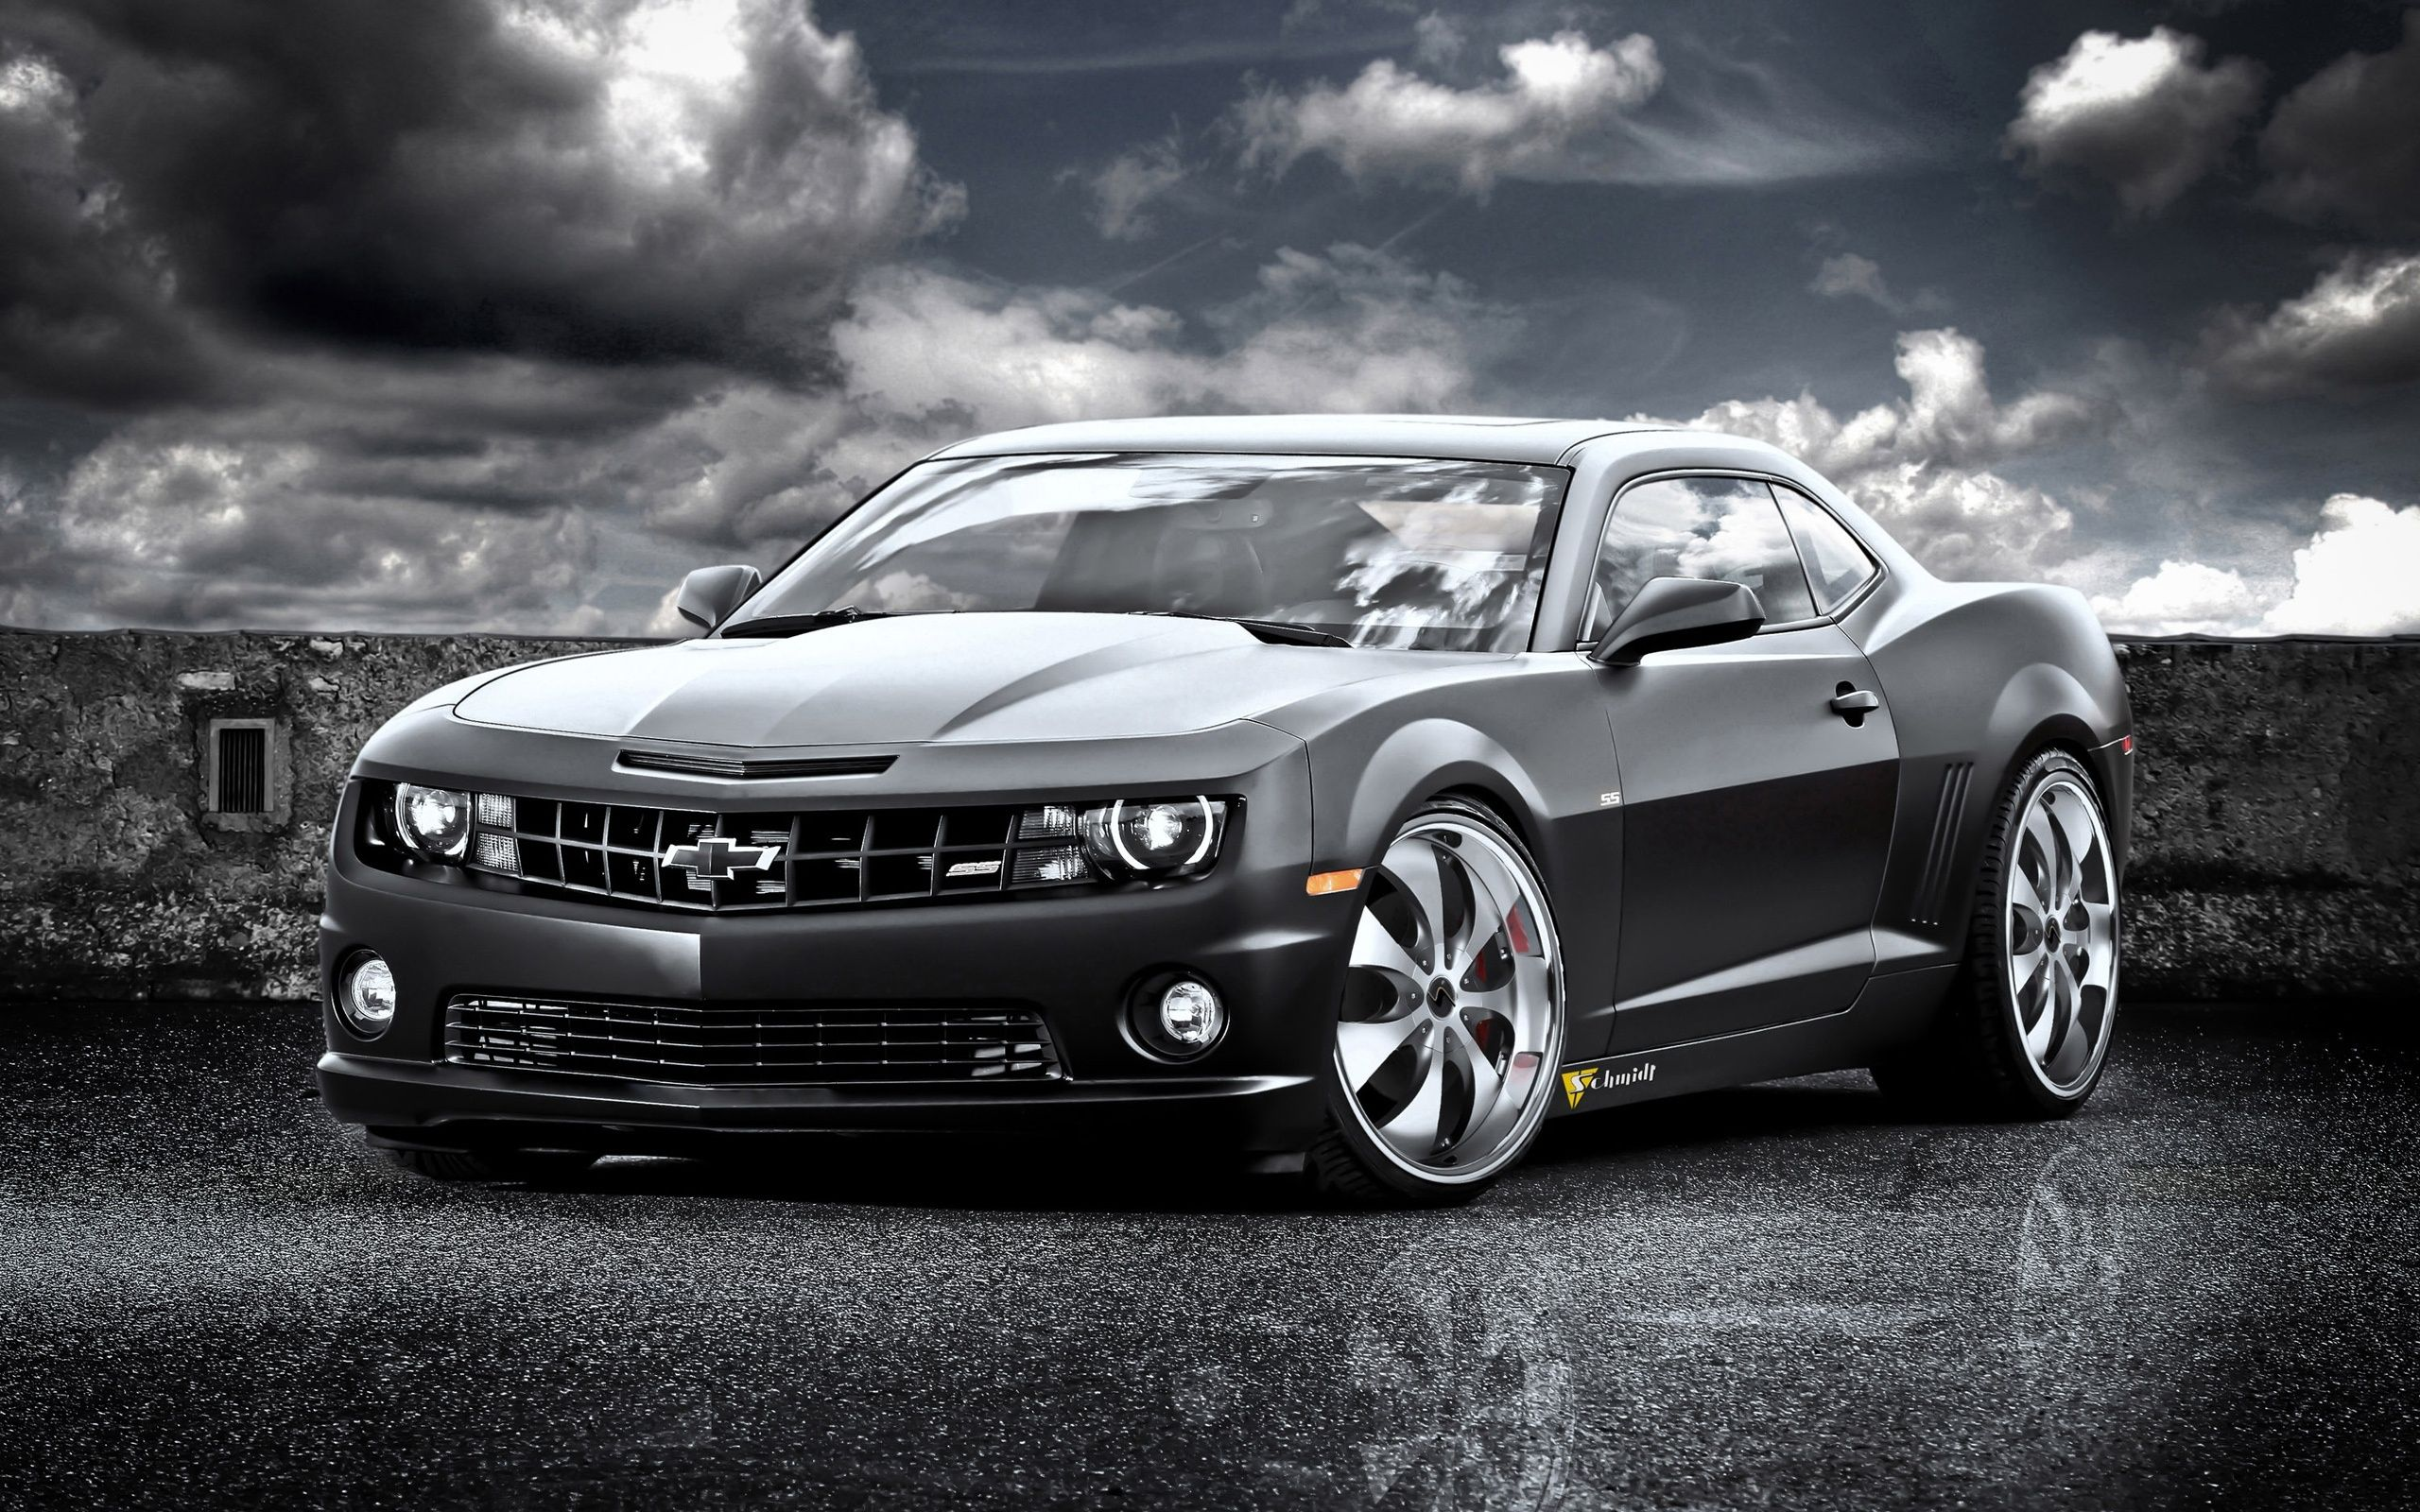 Speed box chevrolet camaro ss black cat picture from our gallery which contains 4 high resolution images of the model